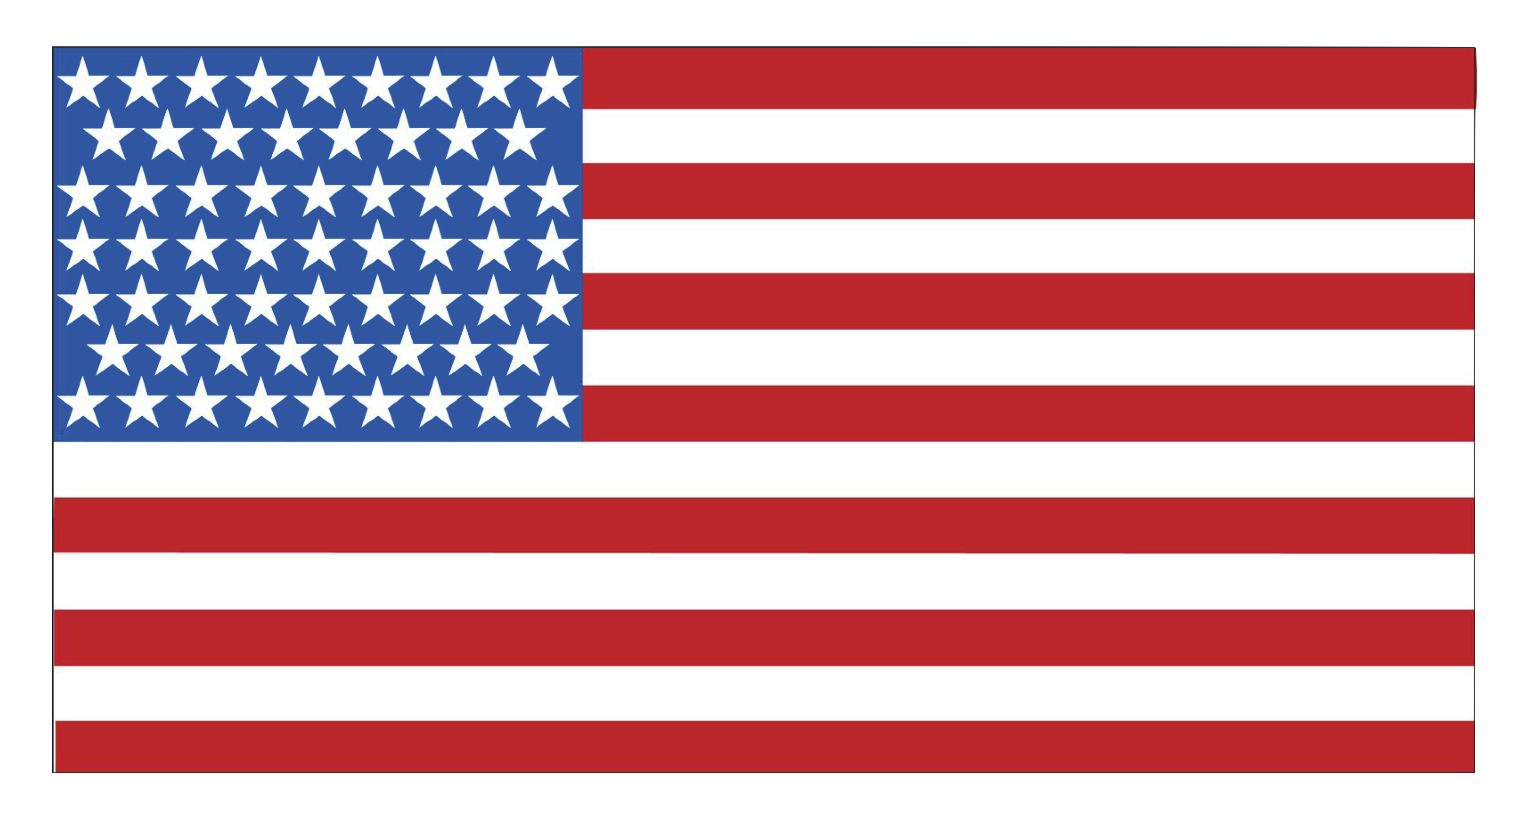 American Flag clipart #7, Download drawings